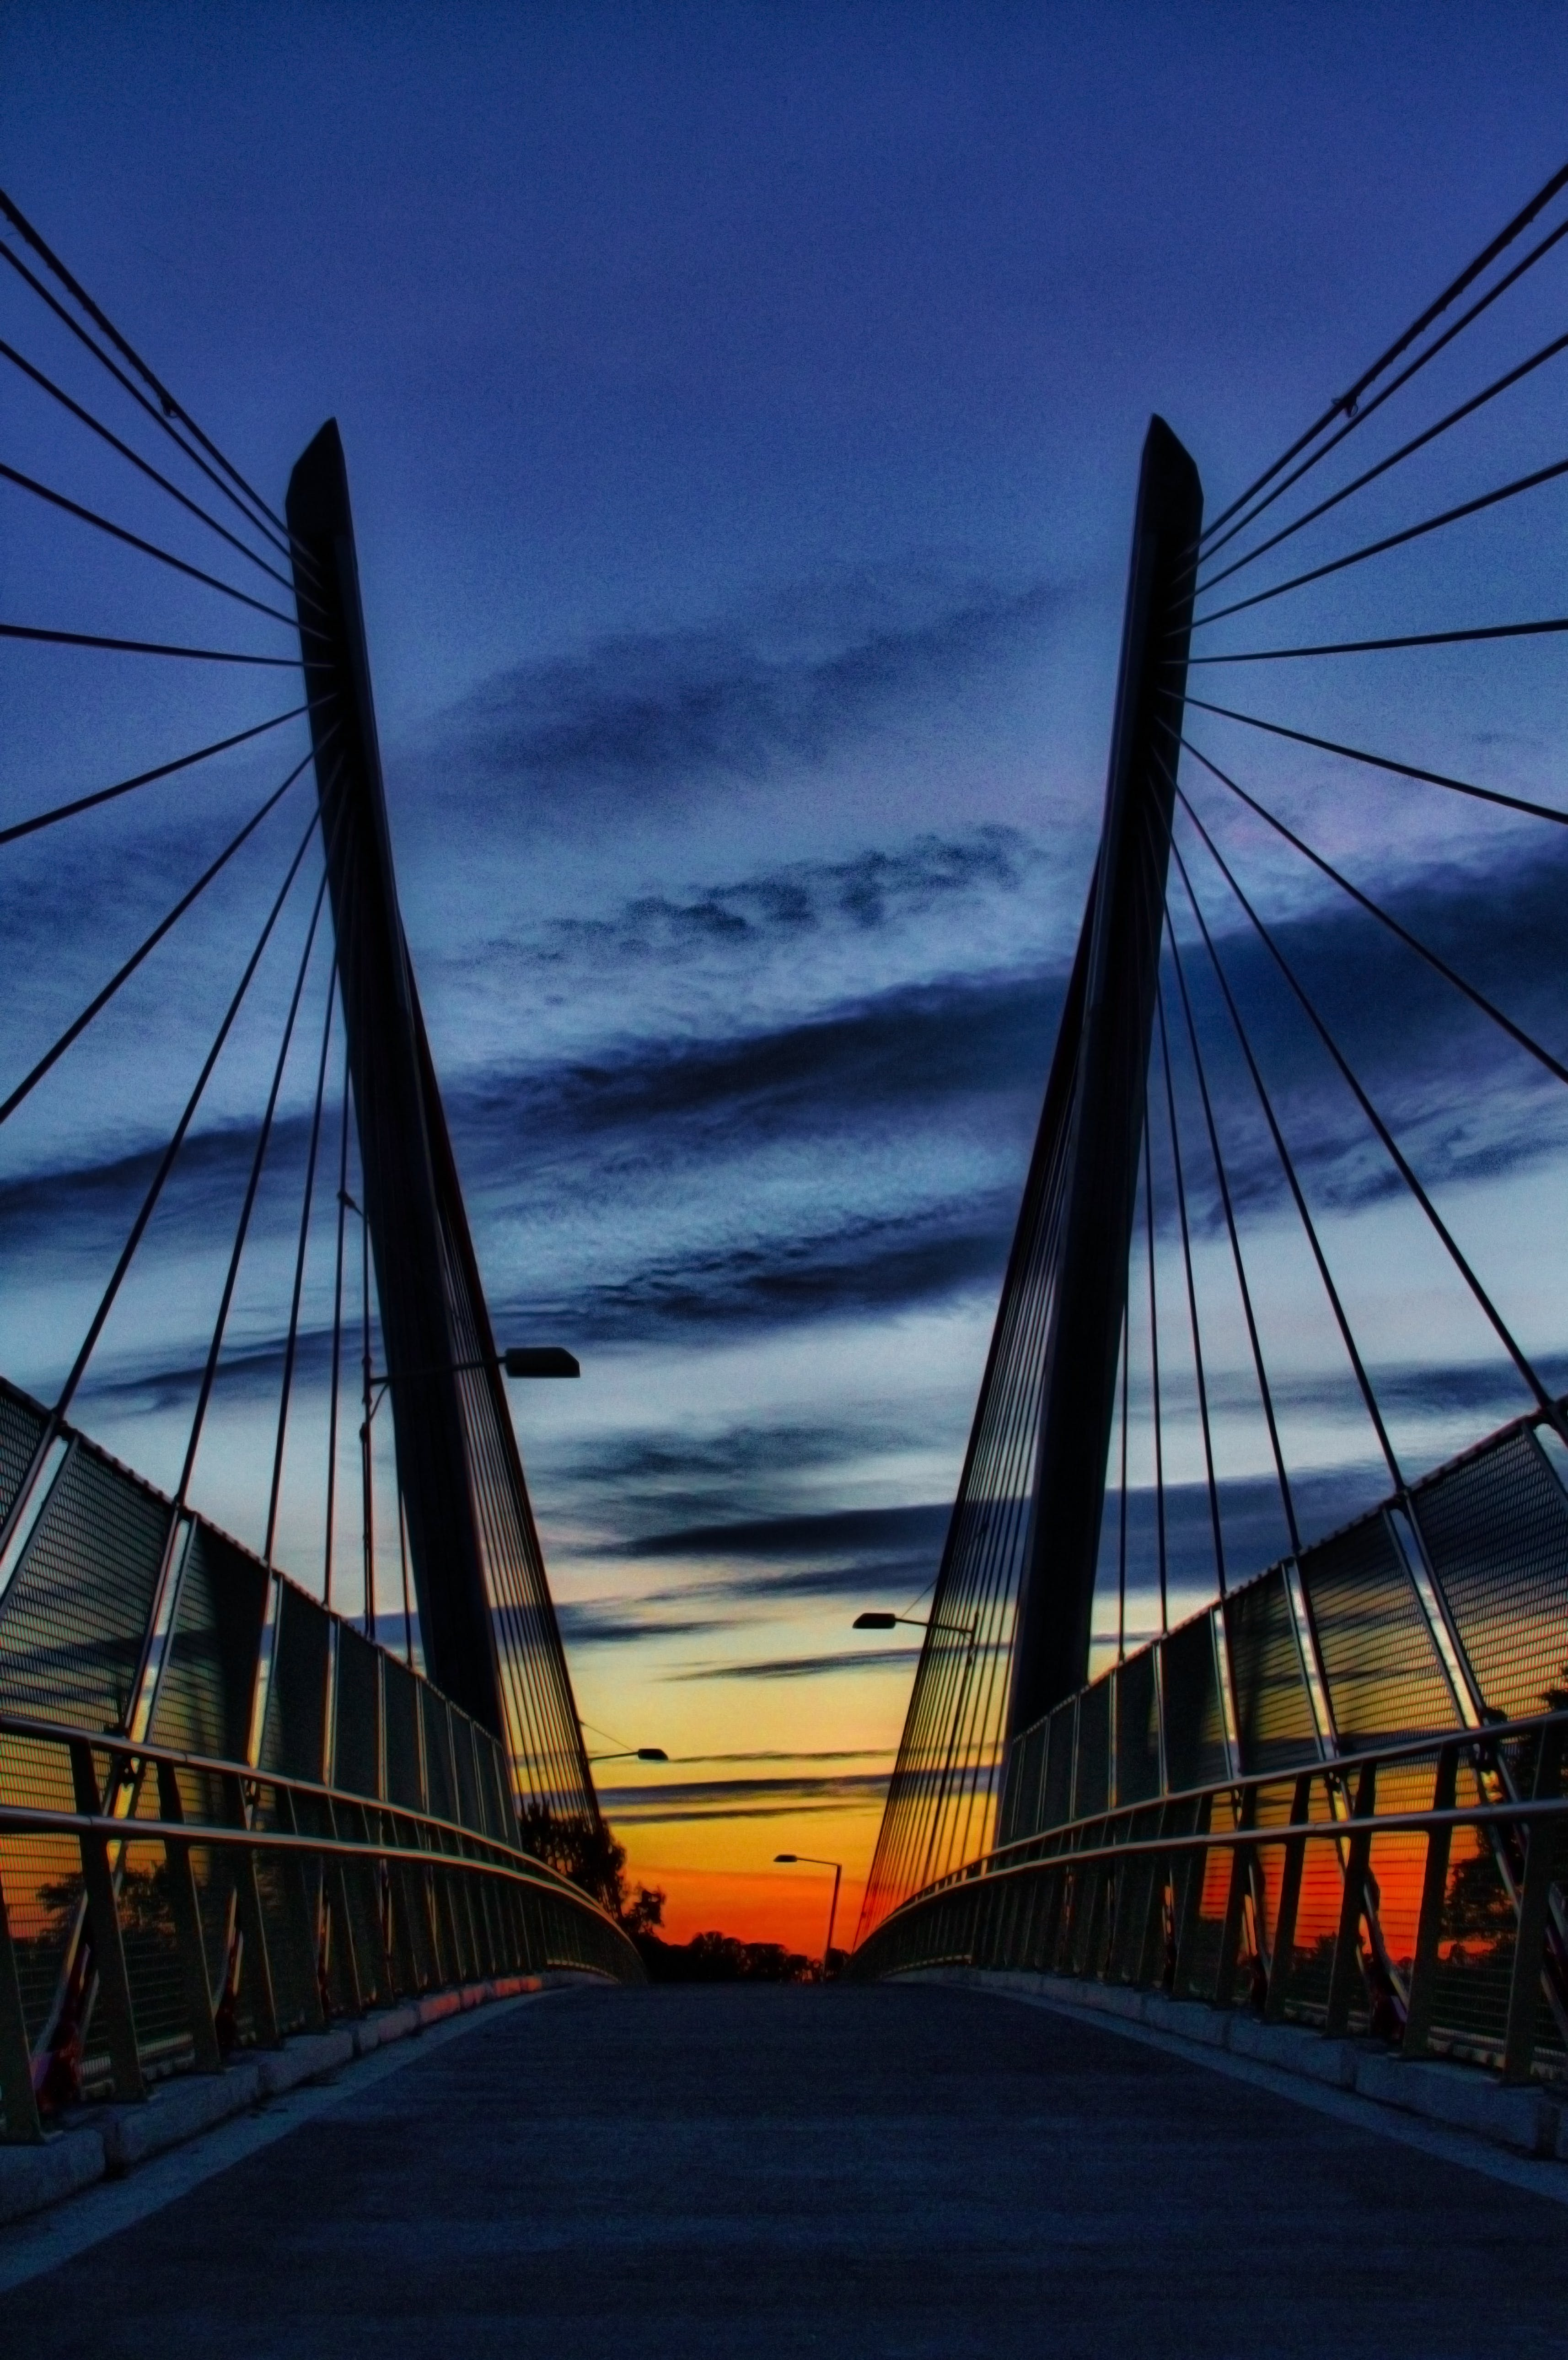 Free stock photo of dawn, bridge, architecture, suspension bridge